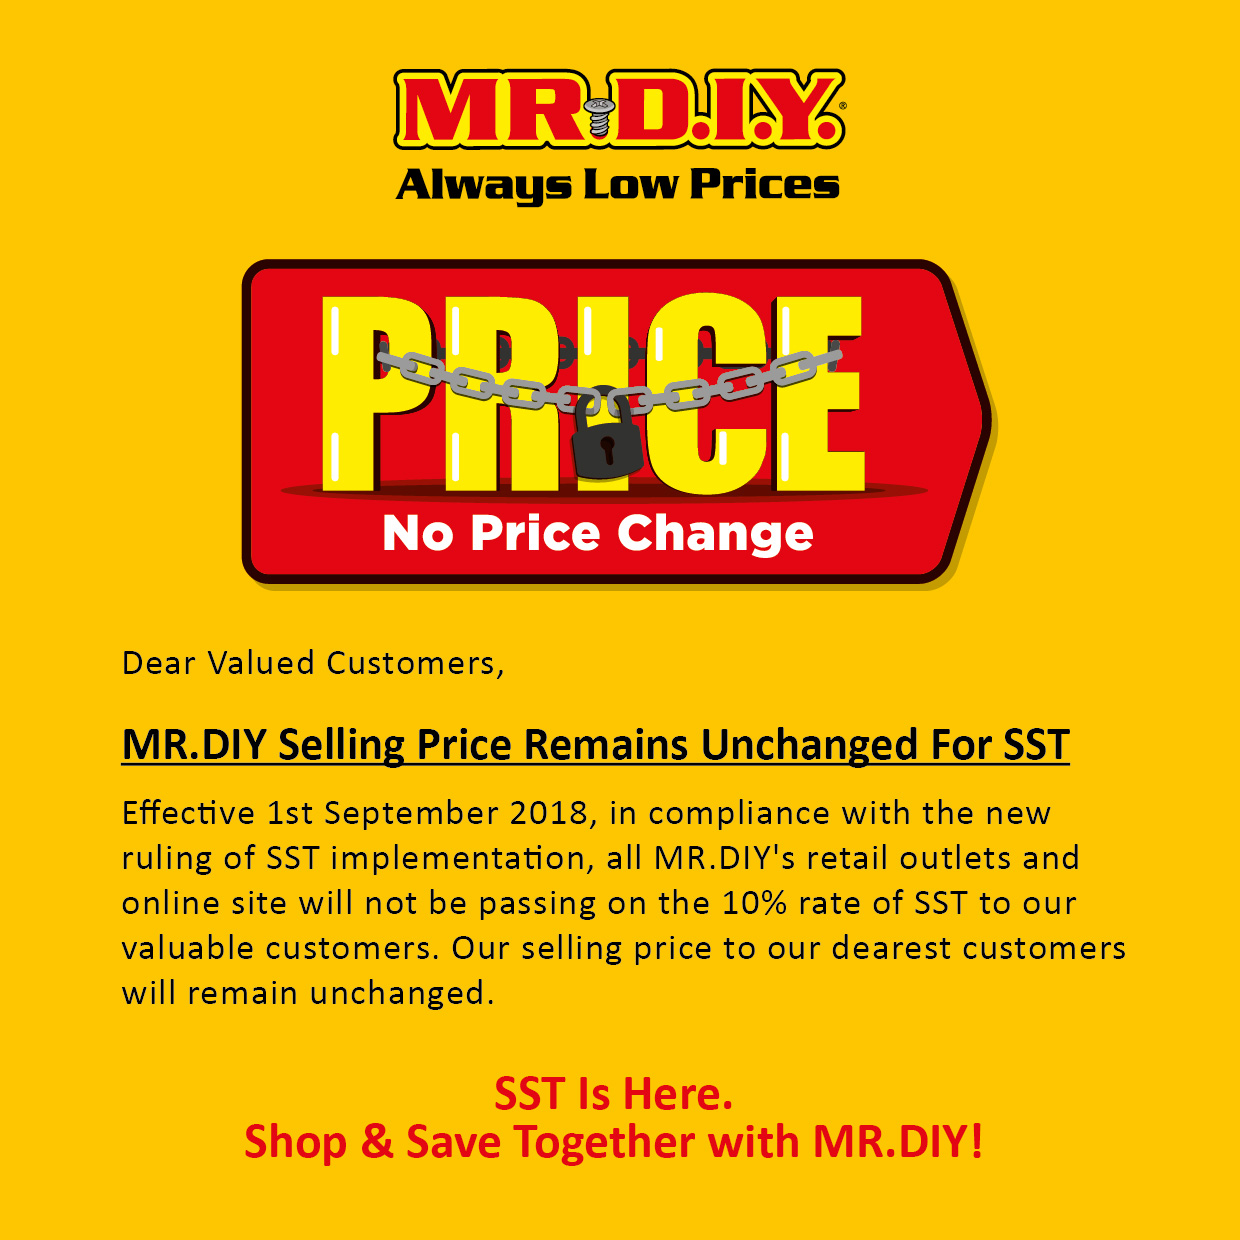 MR.DIY Selling Price Remains Unchanged for SST